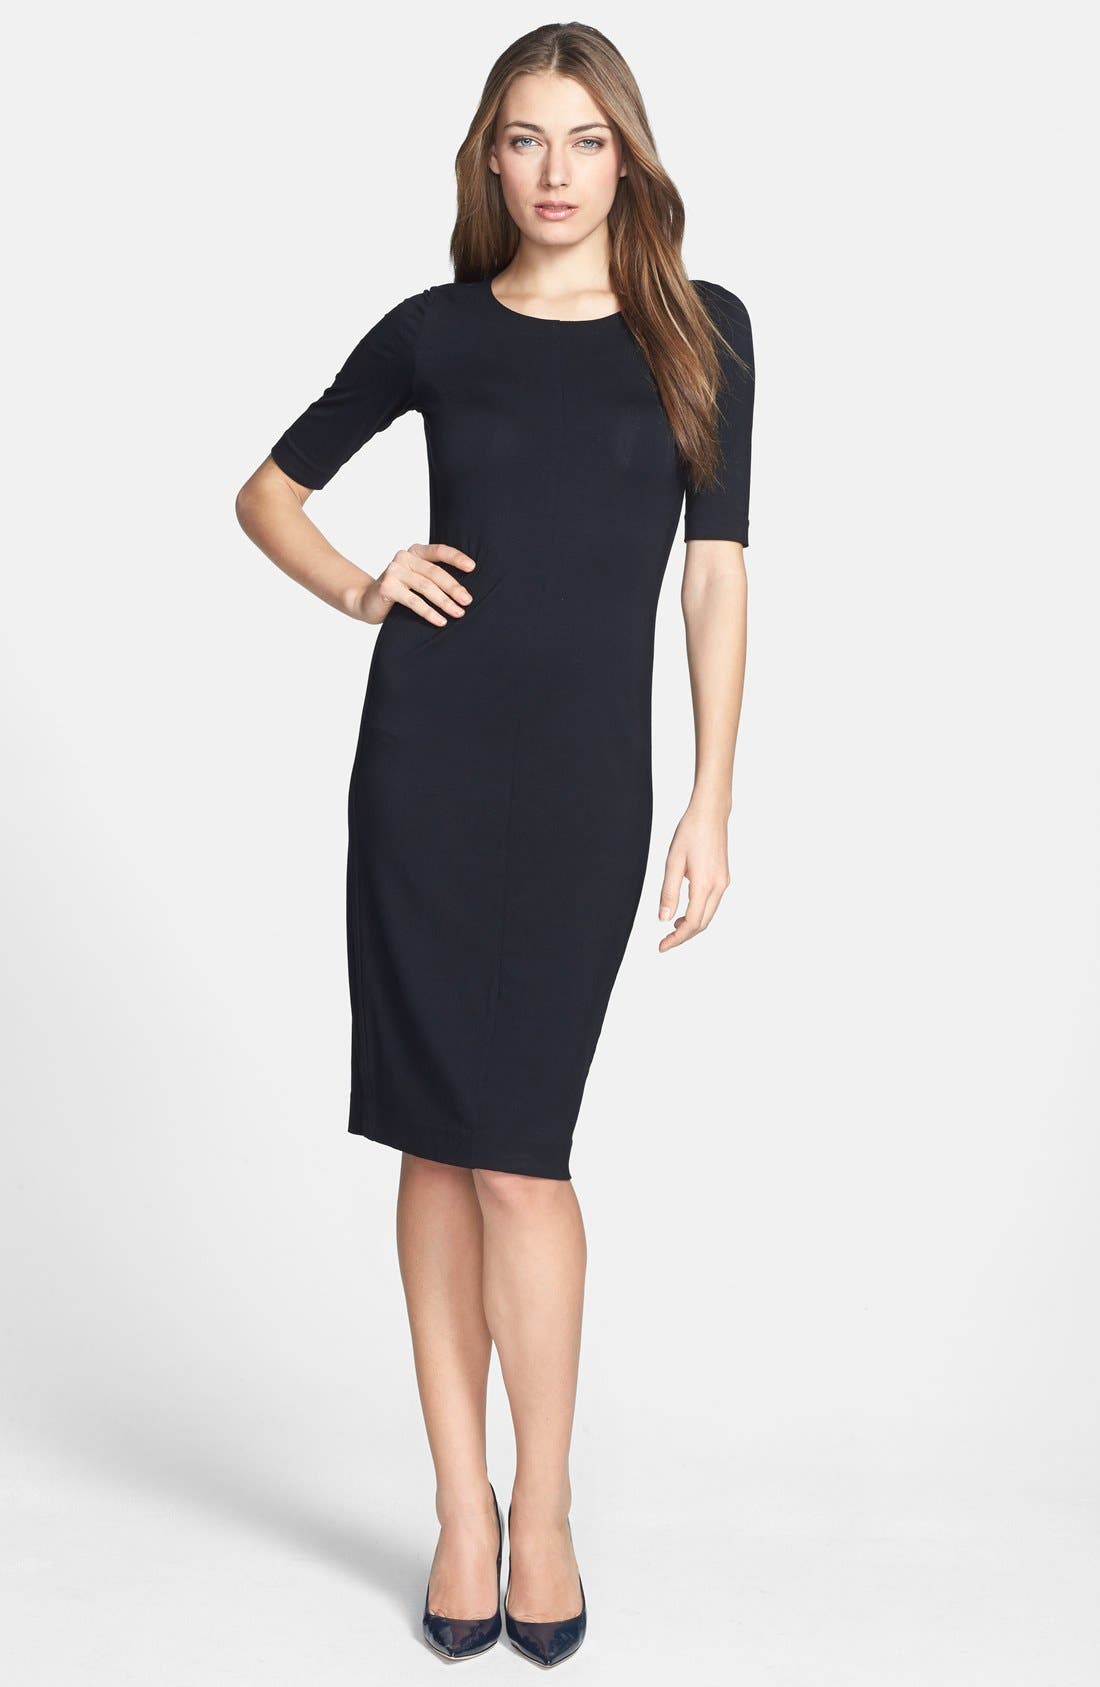 Alternate Image 1 Selected - Diane von Furstenberg 'Raquel' Knit Sheath Dress